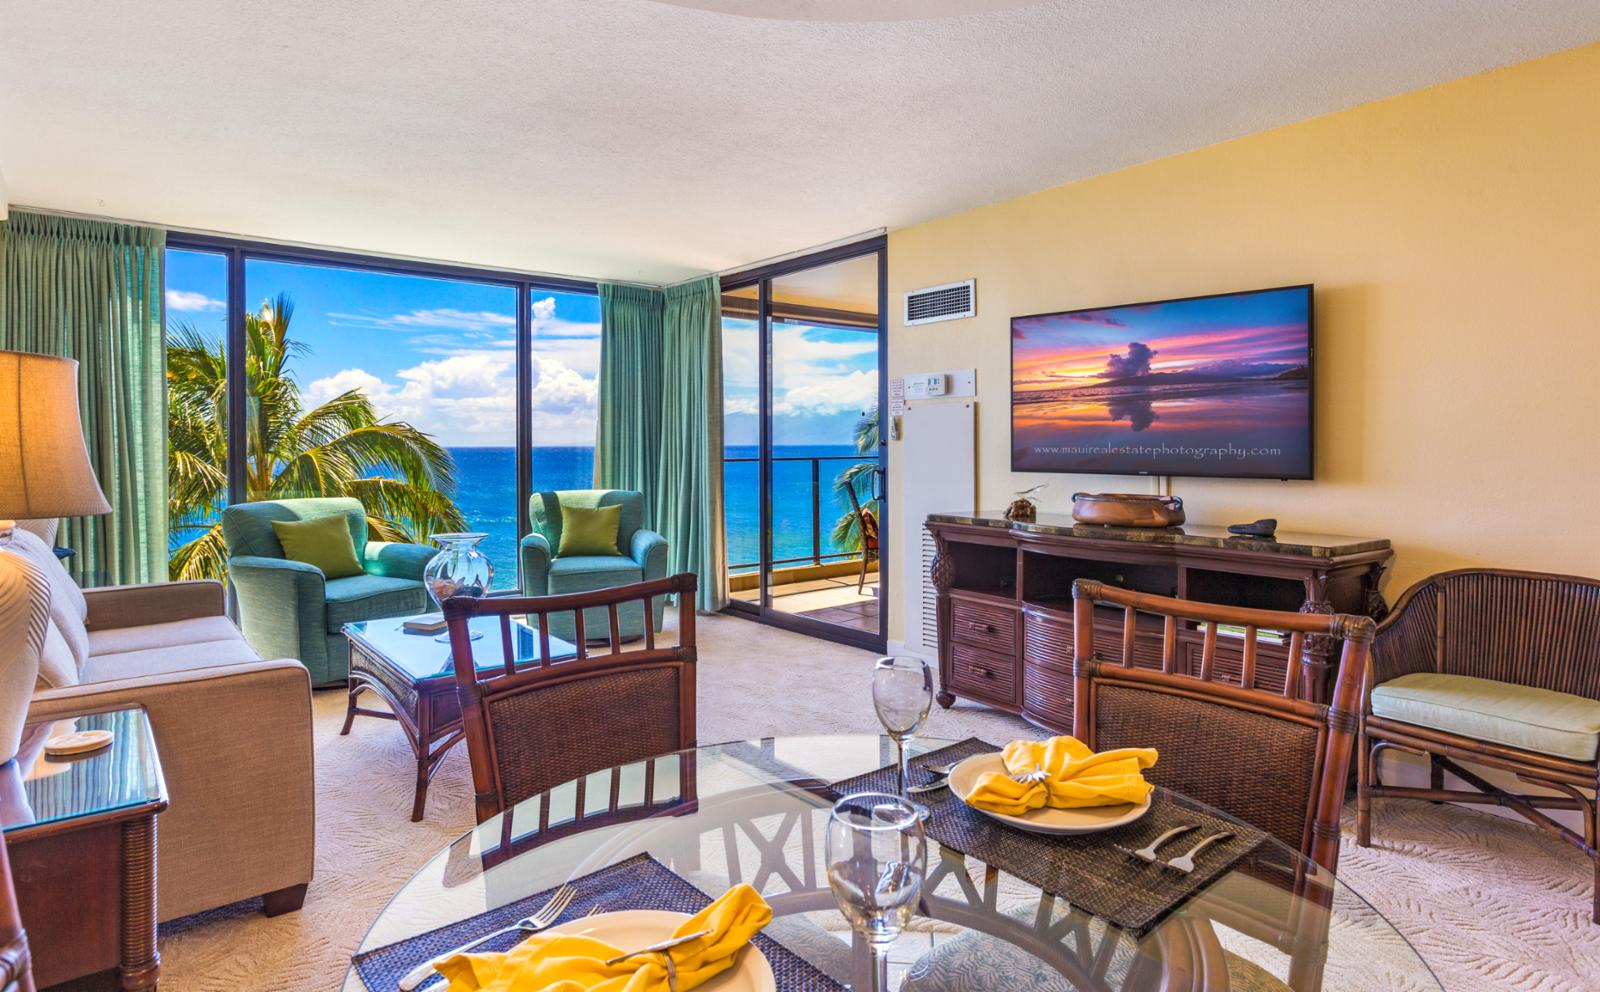 Large flat screen television with ocean views